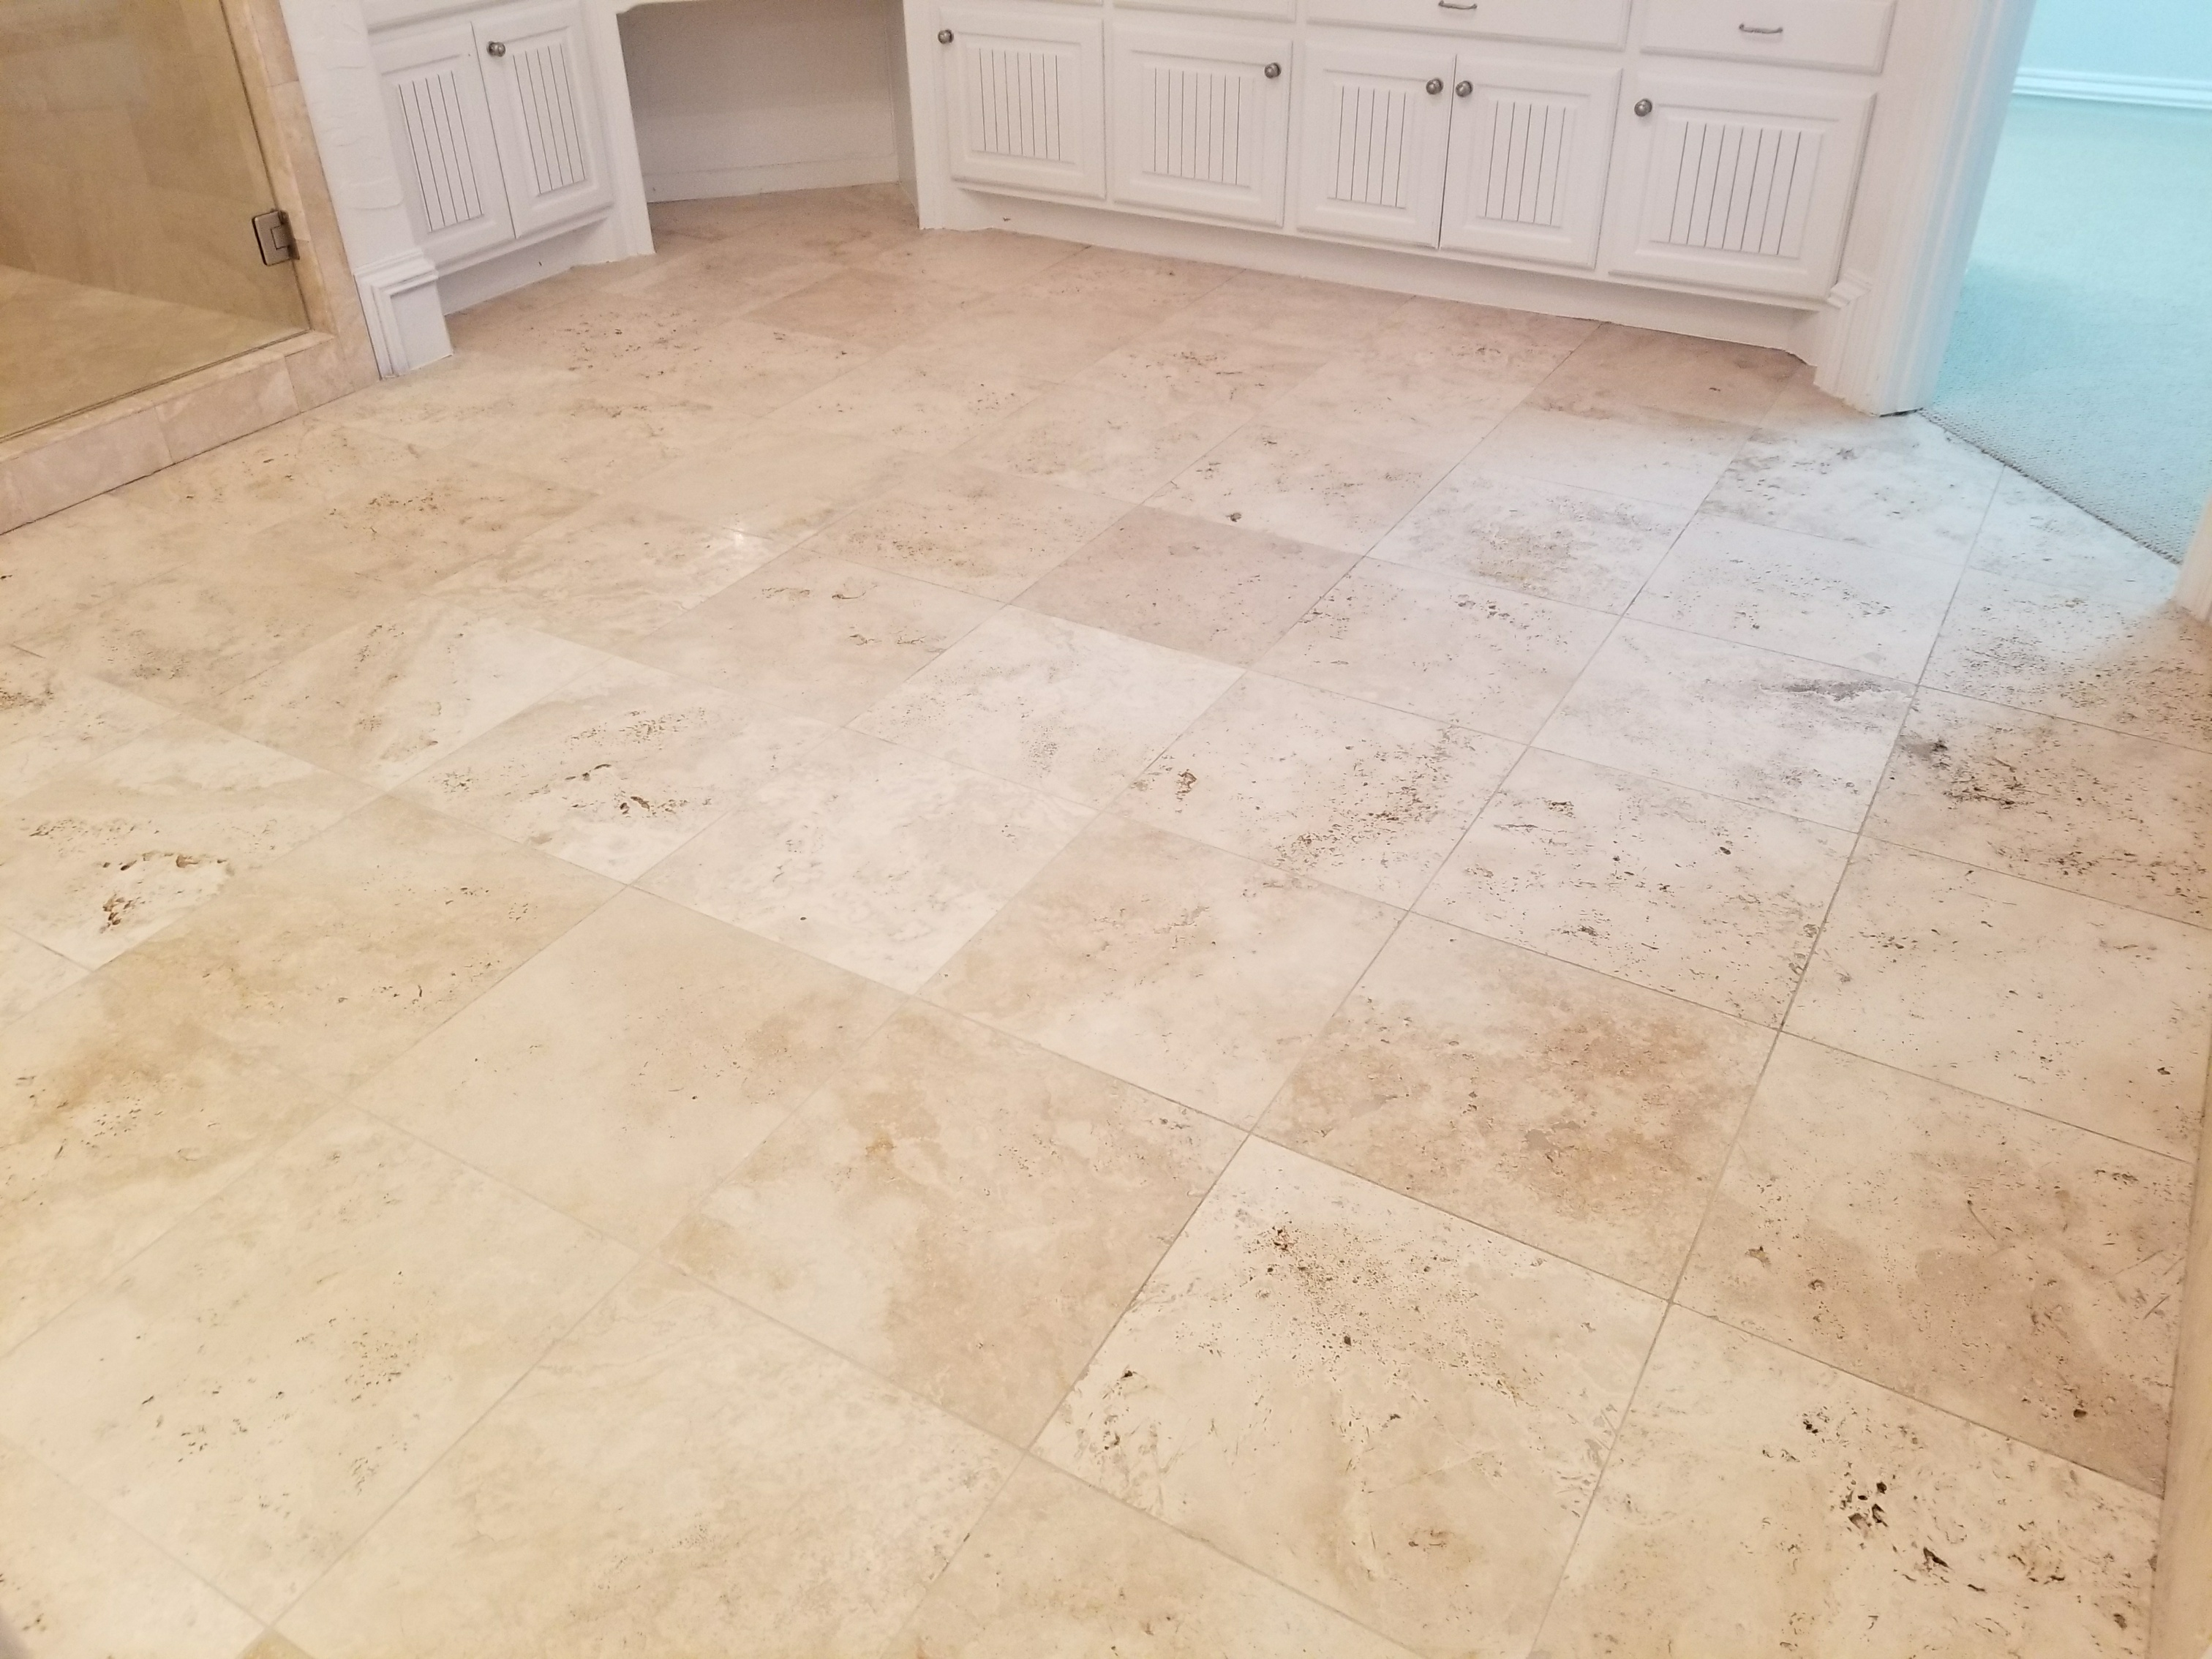 Limestone Or Travertine Tile : Travertine floor cleaning frisco tx marble